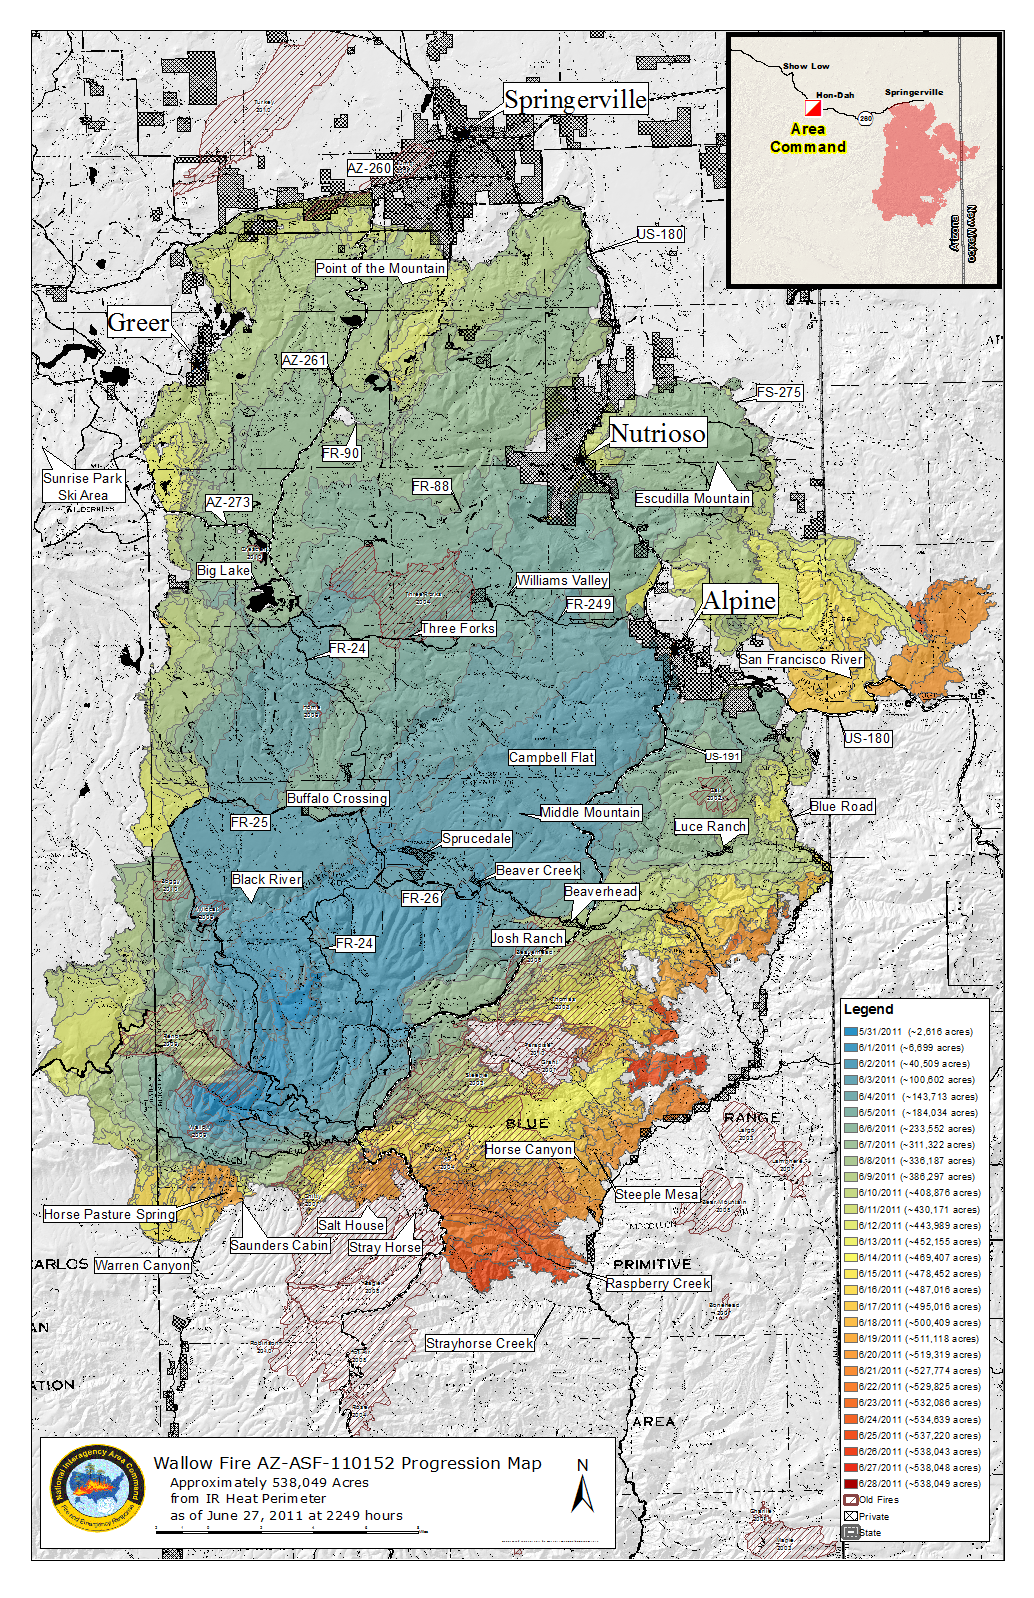 Large Wildfire Map.Have Their Backs Live Firewise Arizona Emergency Information Network